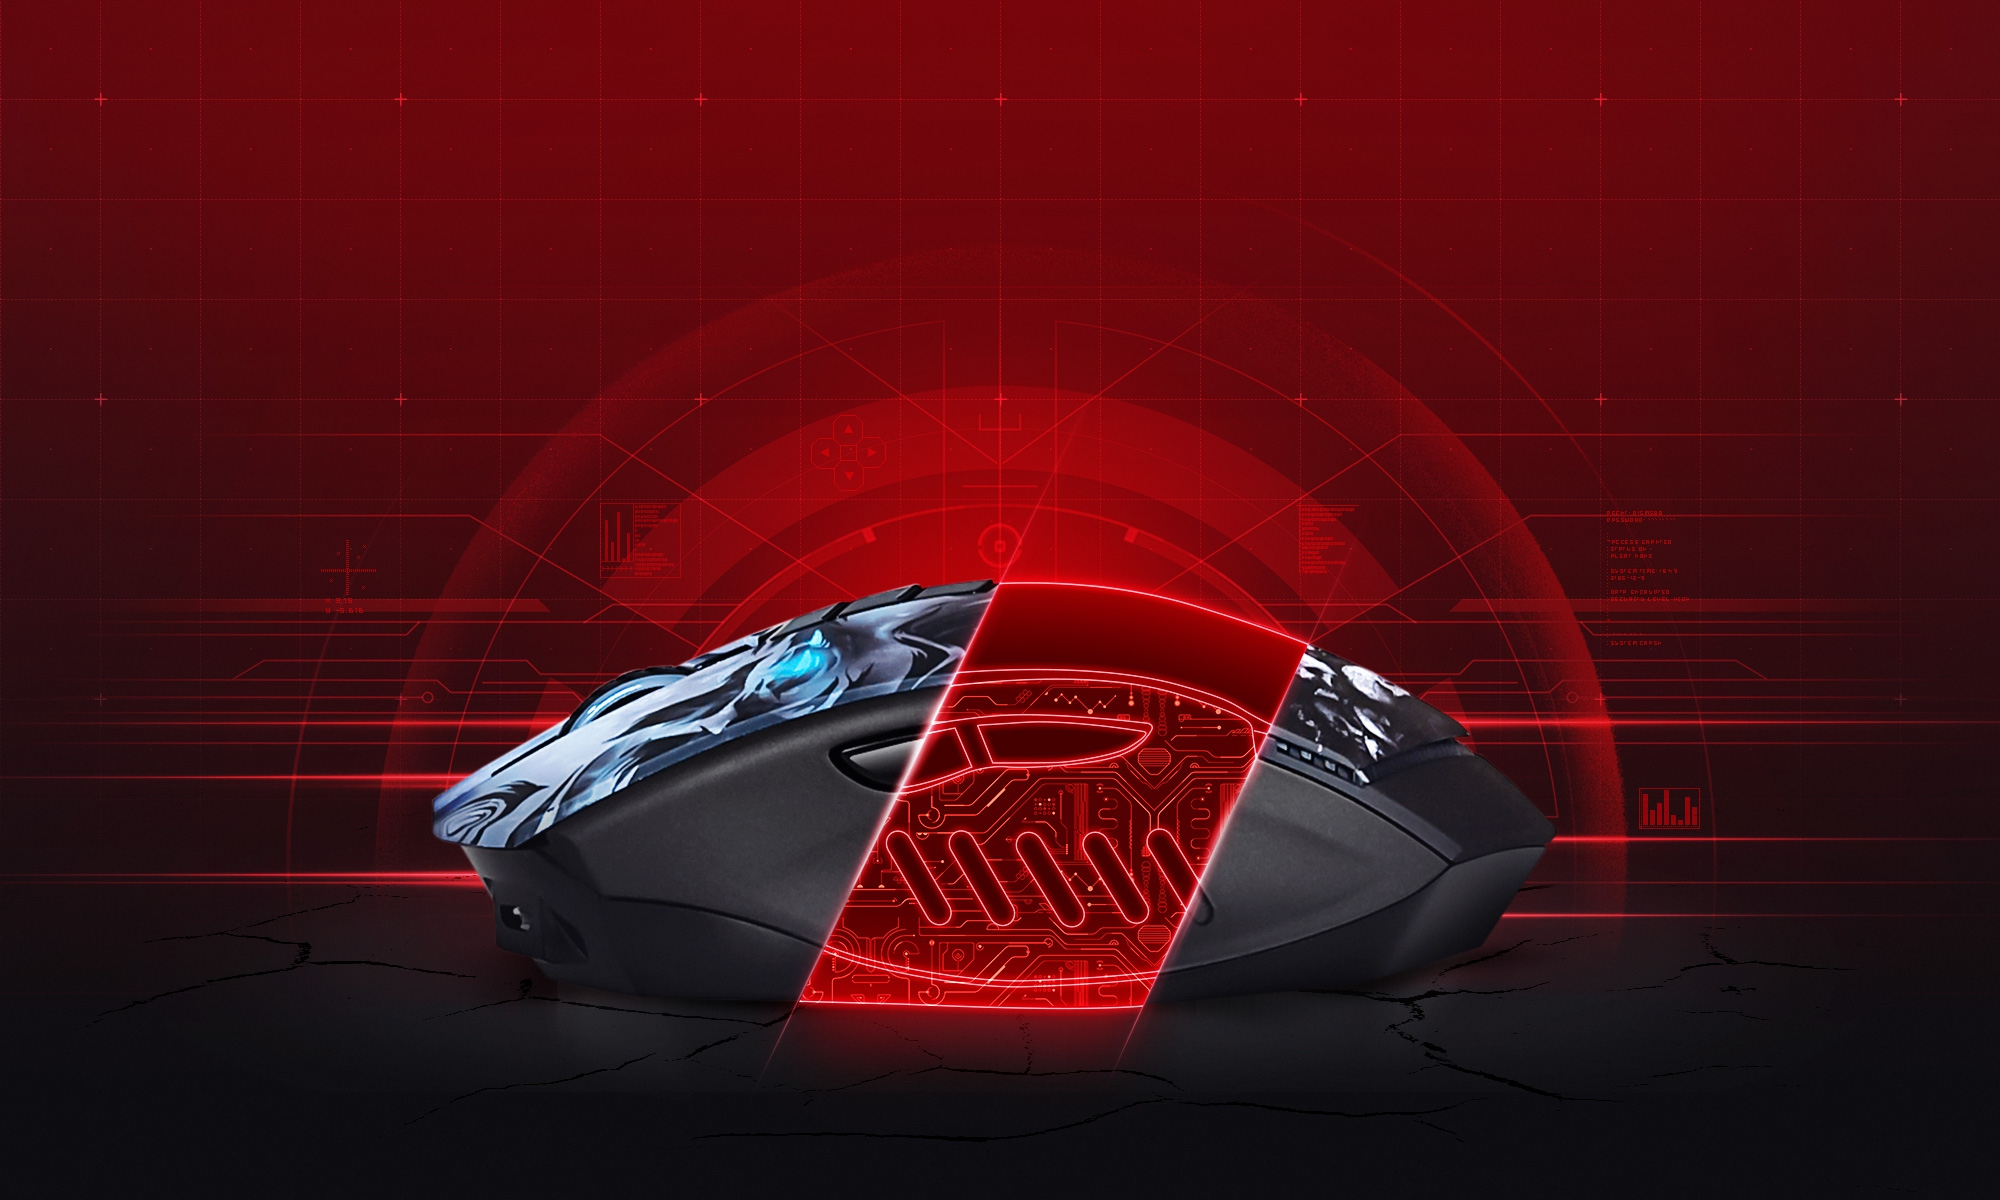 A4Tech Bloody R80 Light Strike Wireless Gaming Mouse